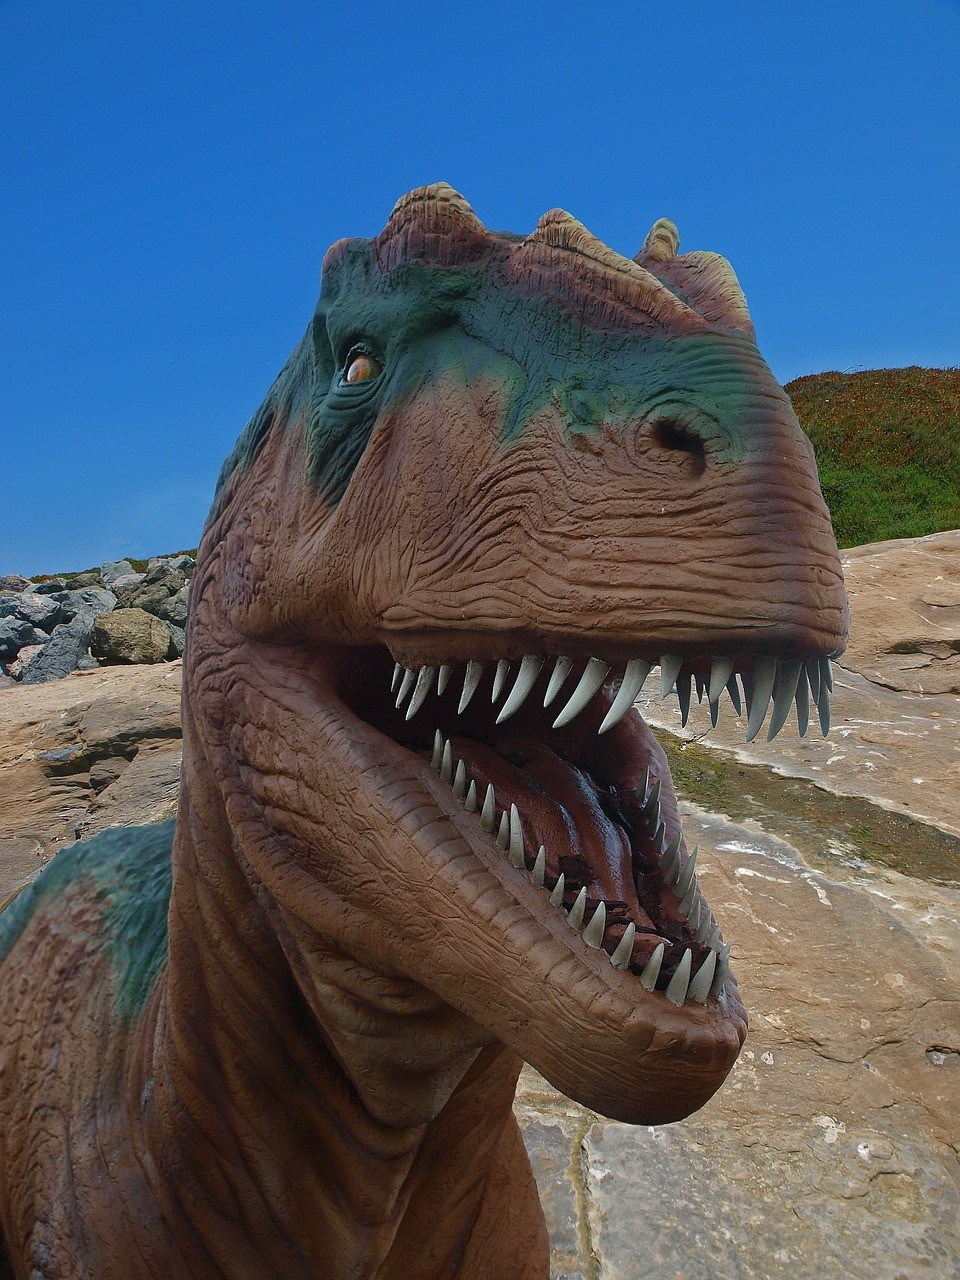 Prophetic Dream Reveals Kingdom Of God On The Move (Dinosaurs Included!)